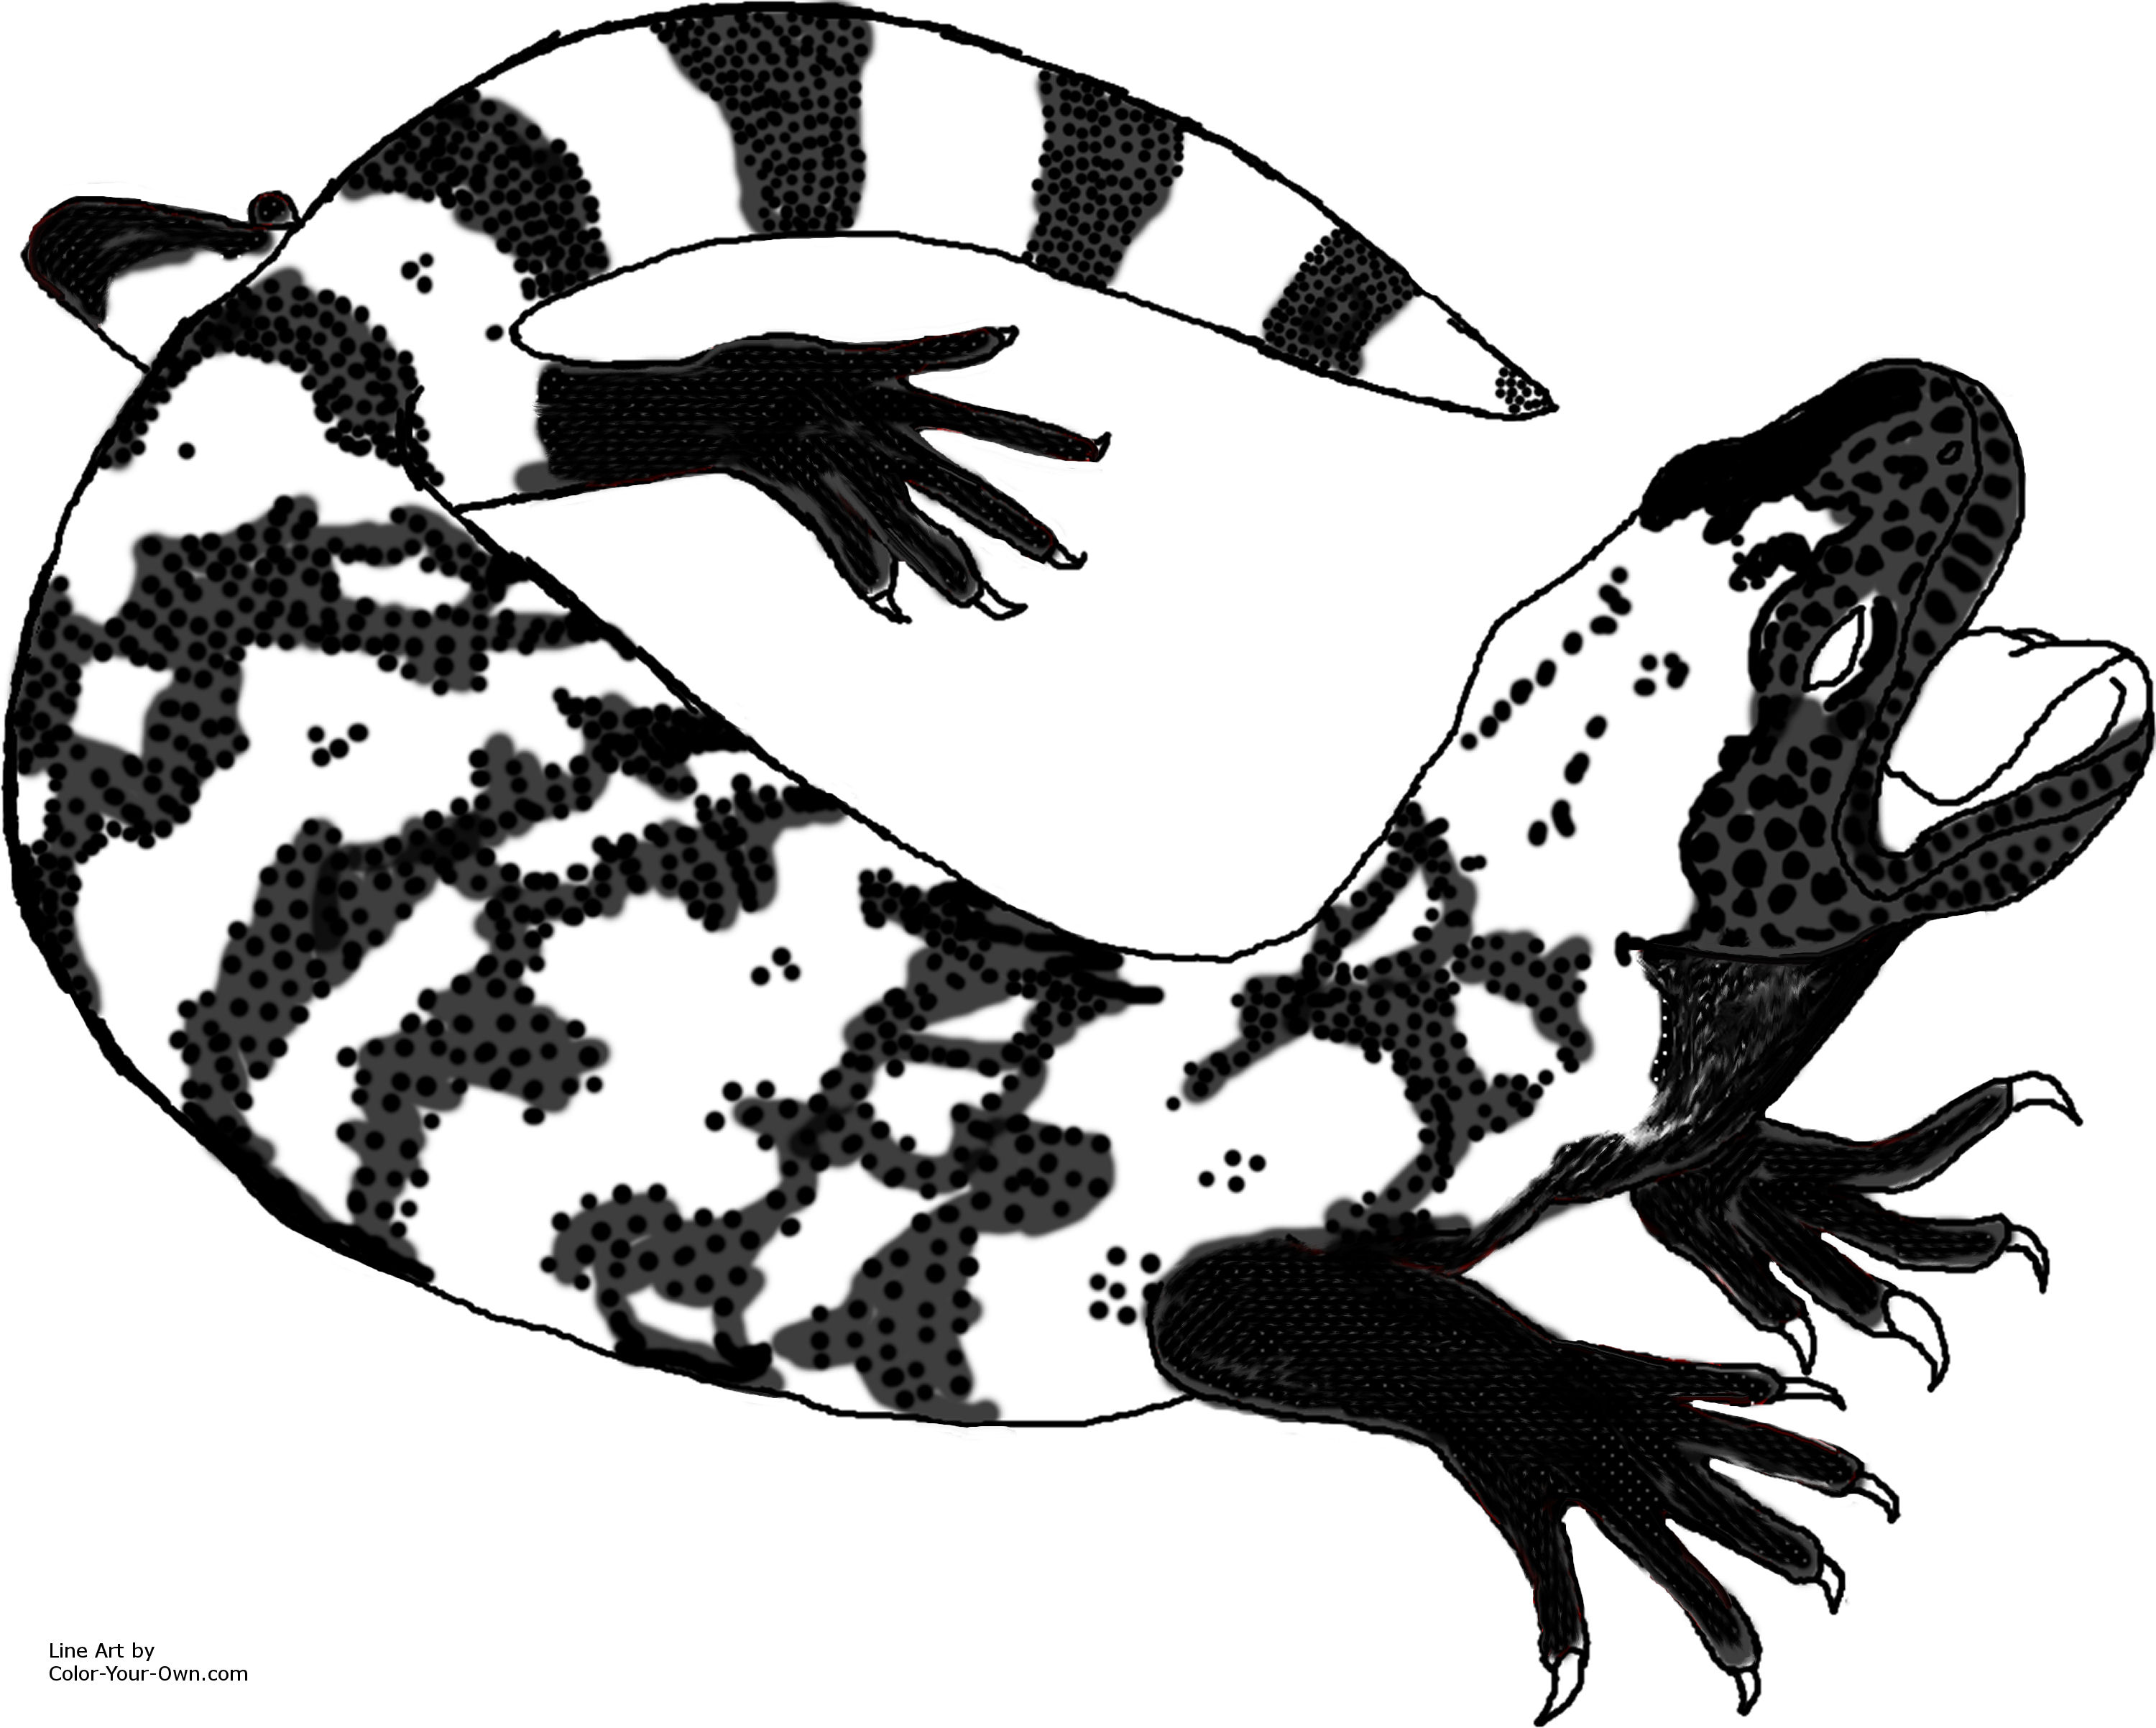 desert grassland whiptail lizard line art gila monster line art